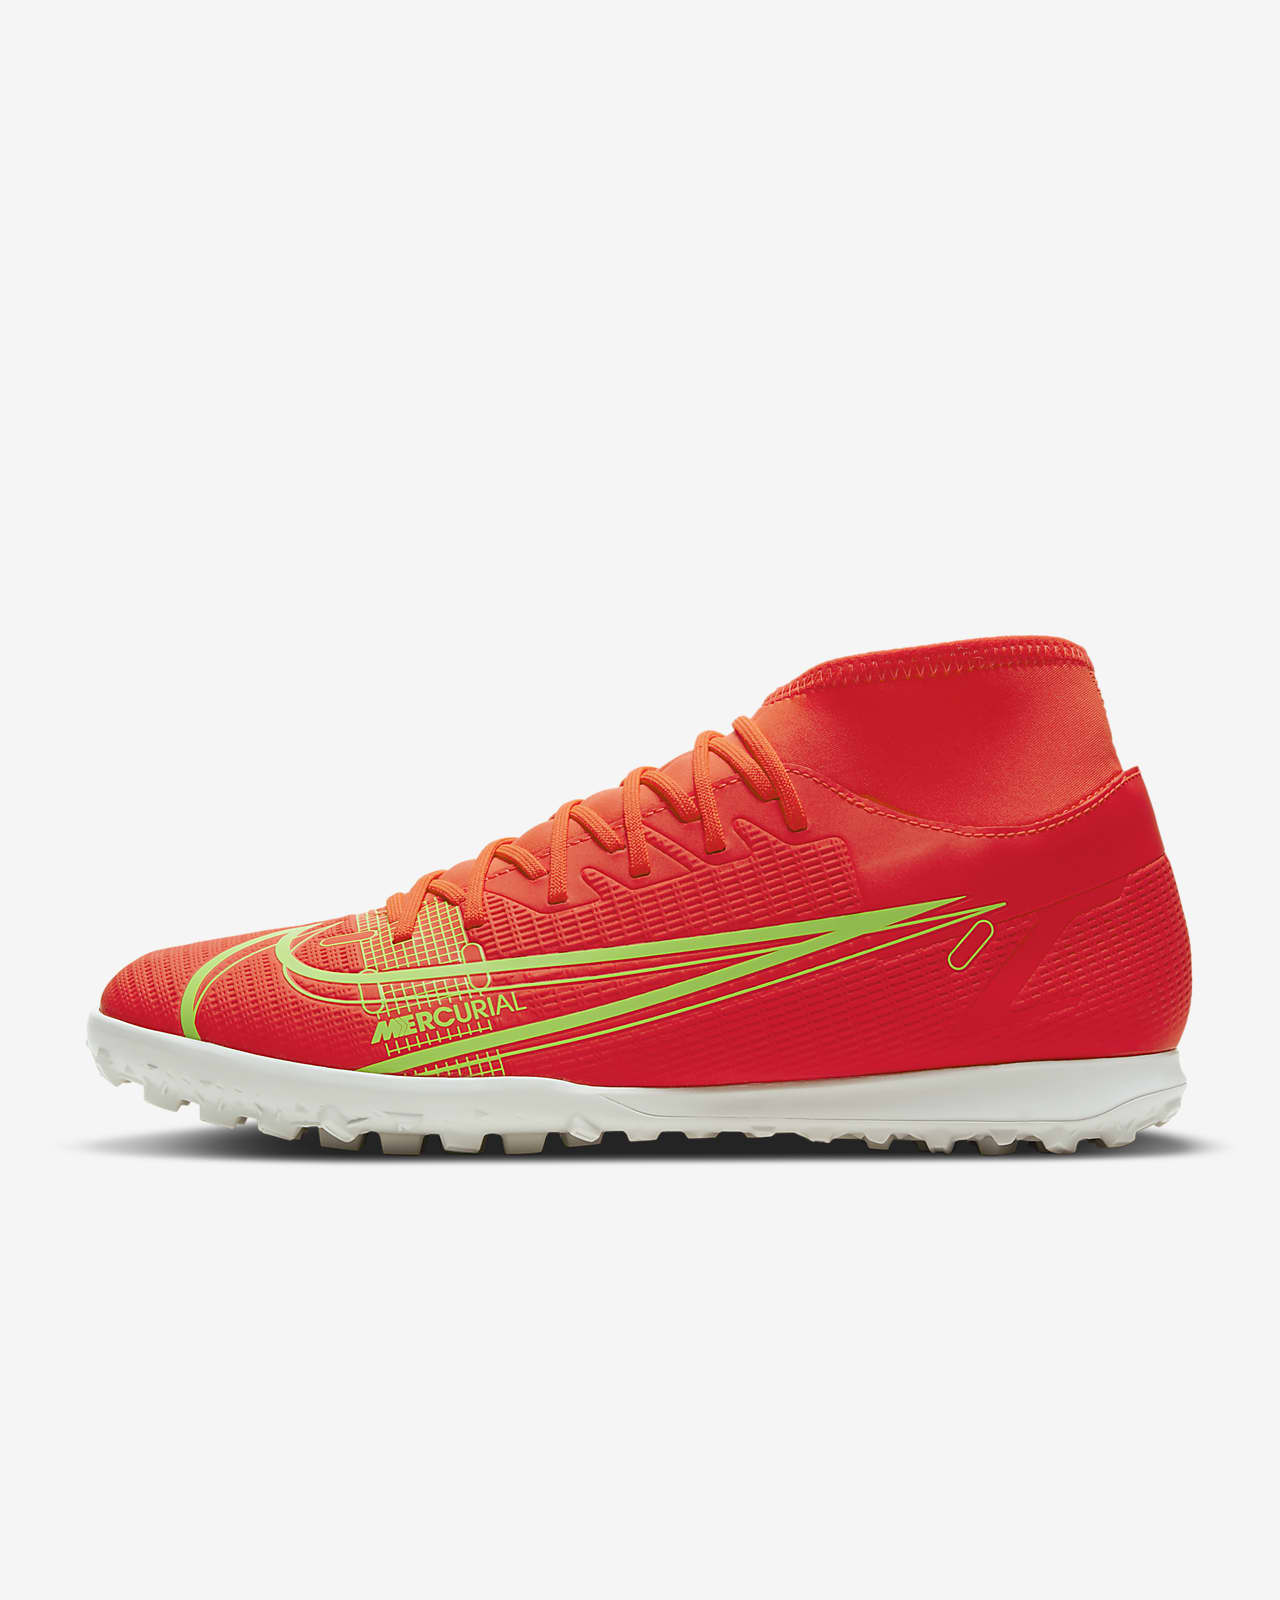 Calzado de fútbol para pasto artificial (turf) Nike Mercurial Superfly 8 Club TF